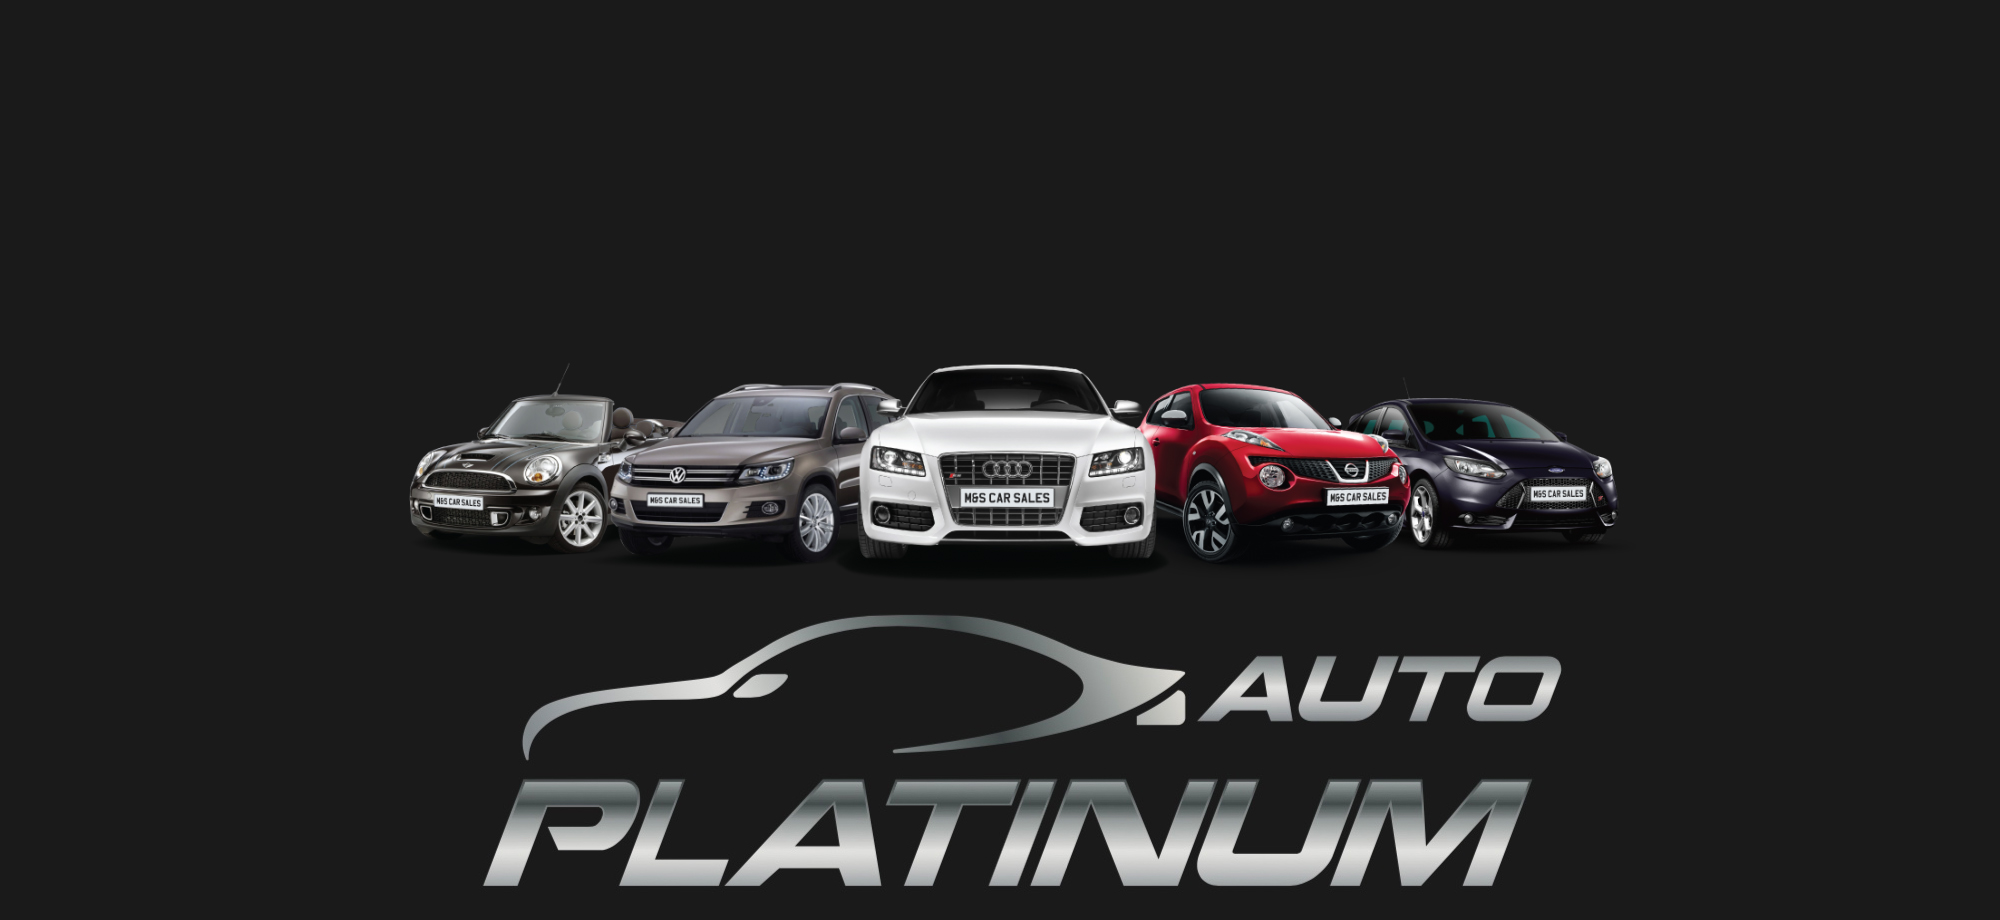 s photos range r img world rover your auto it sport platinum tuning